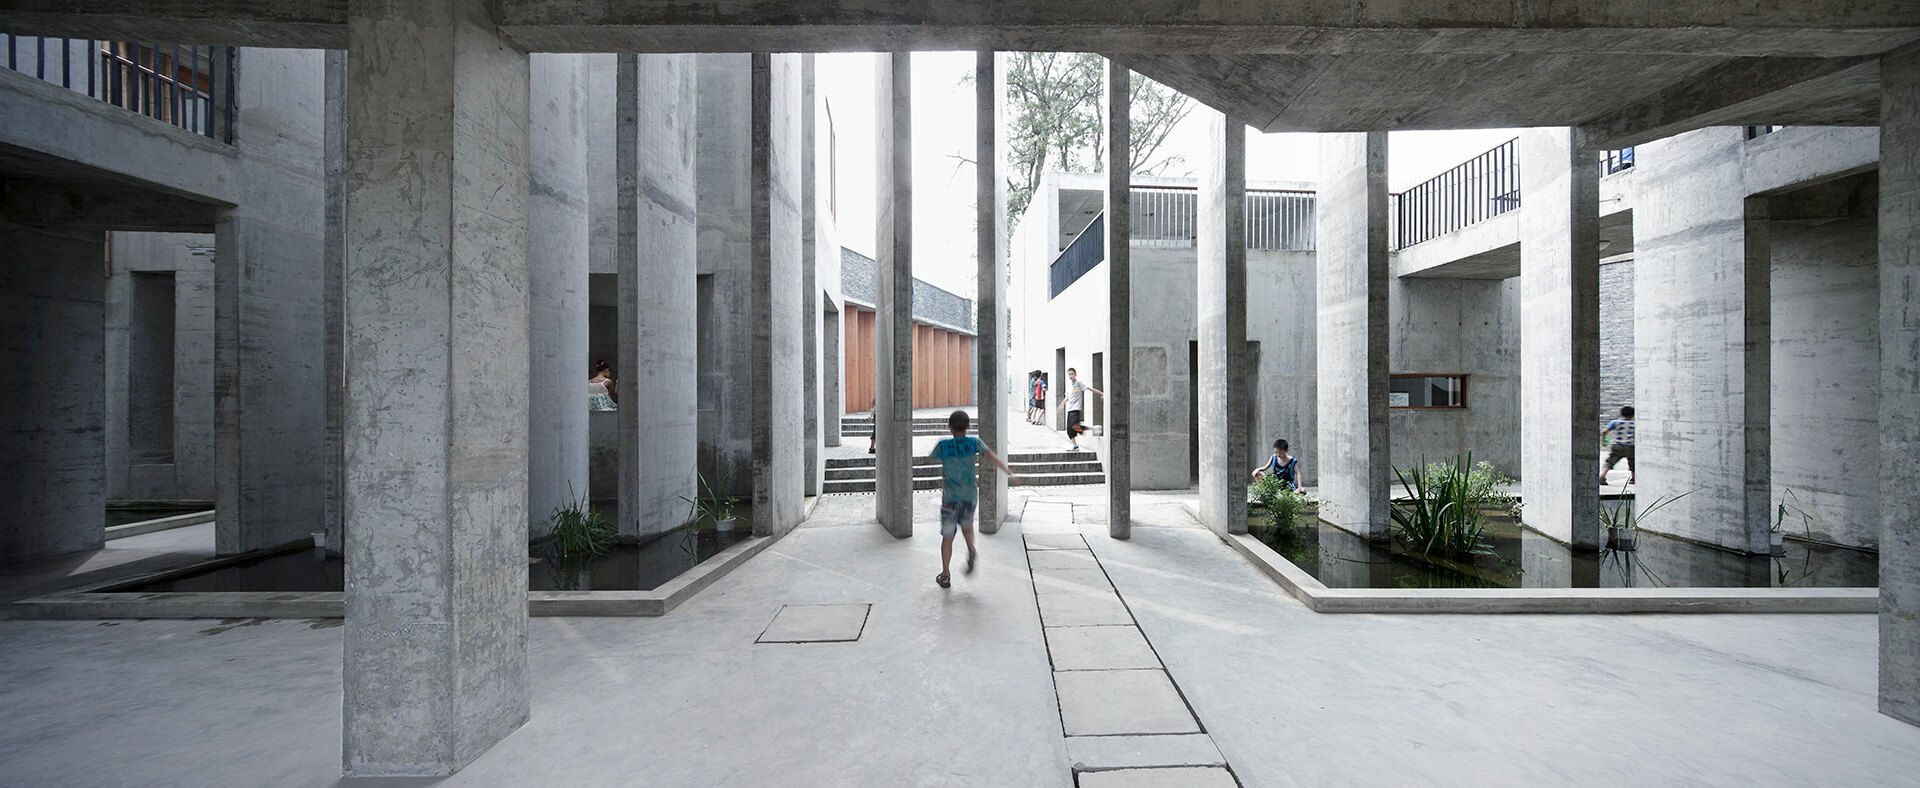 Xiaoquan Elementary School (2010) | Li Hua | Trace Architecture Office | STIRworld